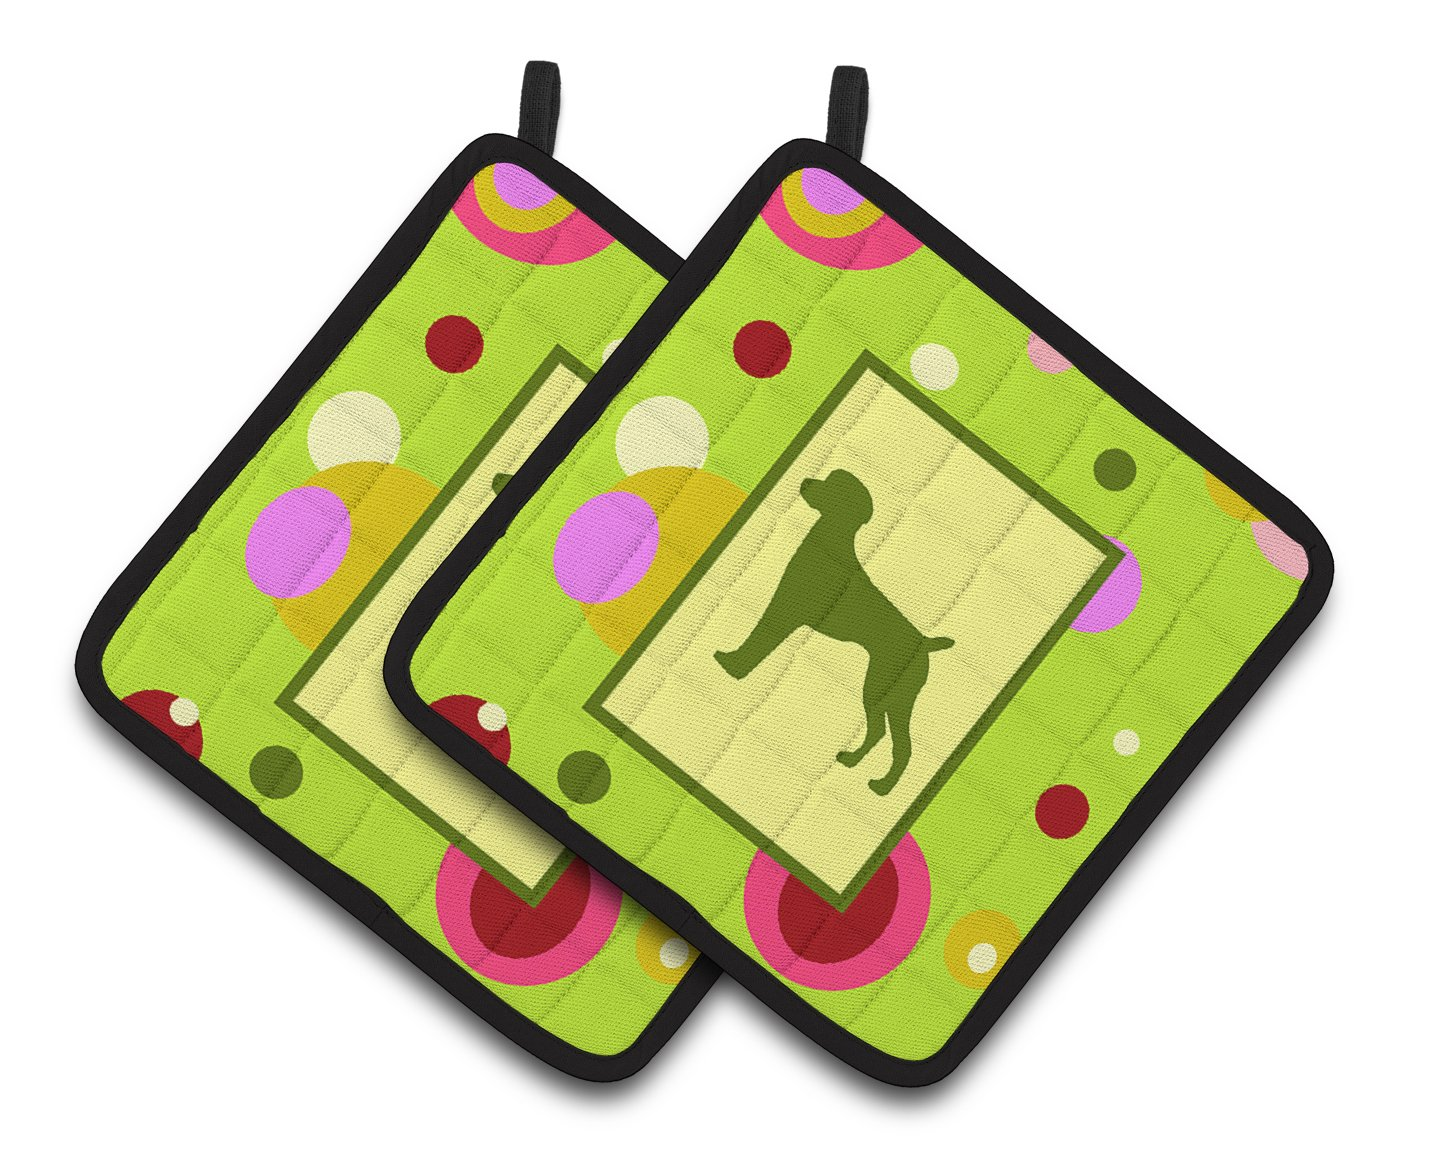 Carolines Treasures Lime green Dots German Shorthaired Pointer Pair of Pot Holders CK1035PTHD Multicolor 7.5HX7.5W